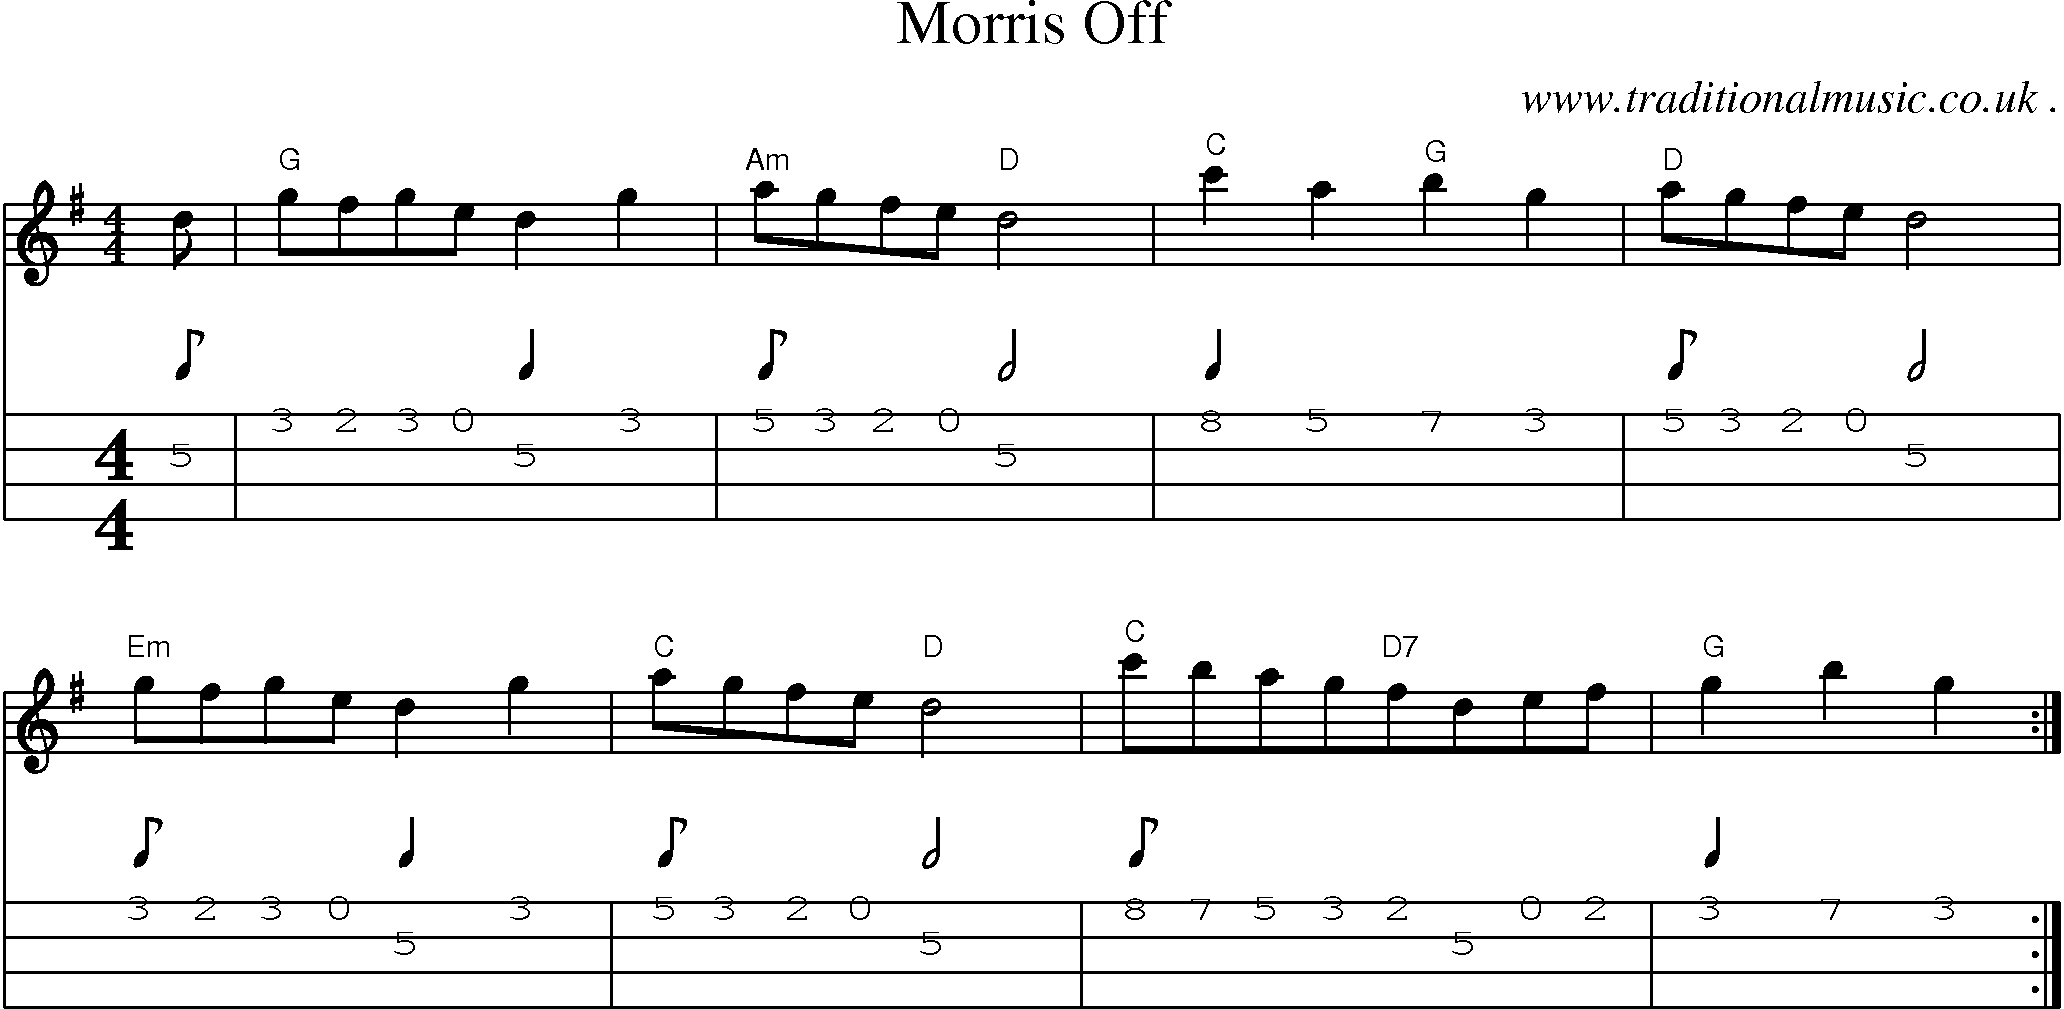 Folk and Traditional Music, Sheet-Music, Mandolin tab, midi, mp3 and PDF for: Morris Off